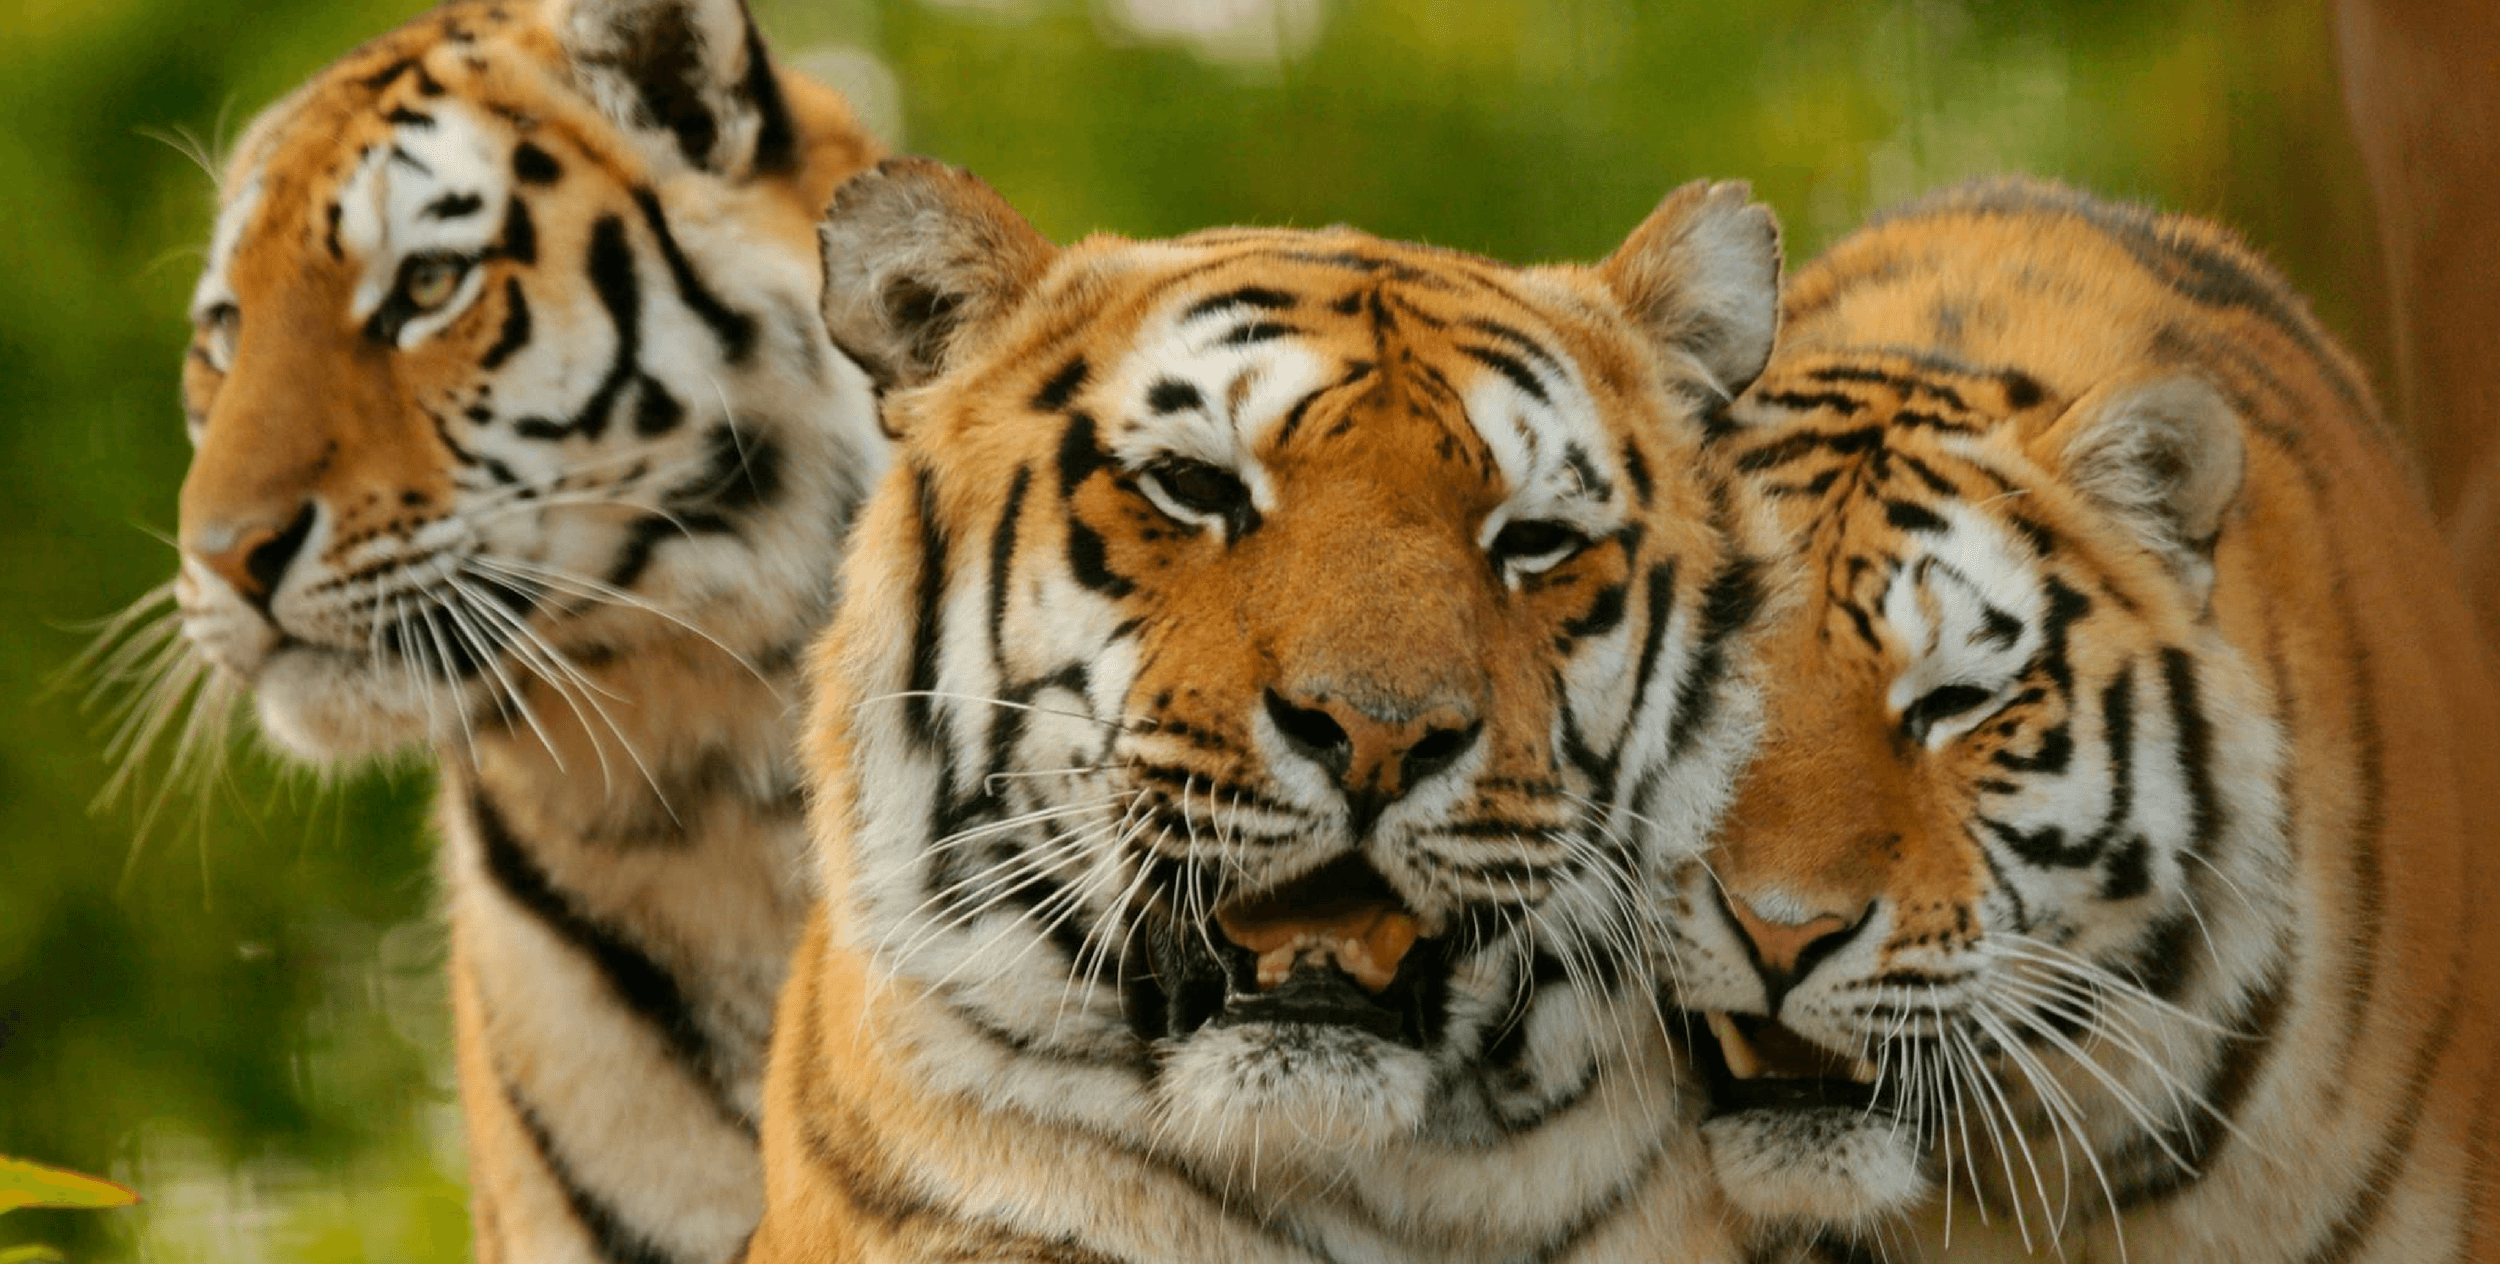 Land of the Tiger is a BBC nature documentary series exploring the natural history of the Indian subcontinent first transmitted in the UK on BBC Two in 1997